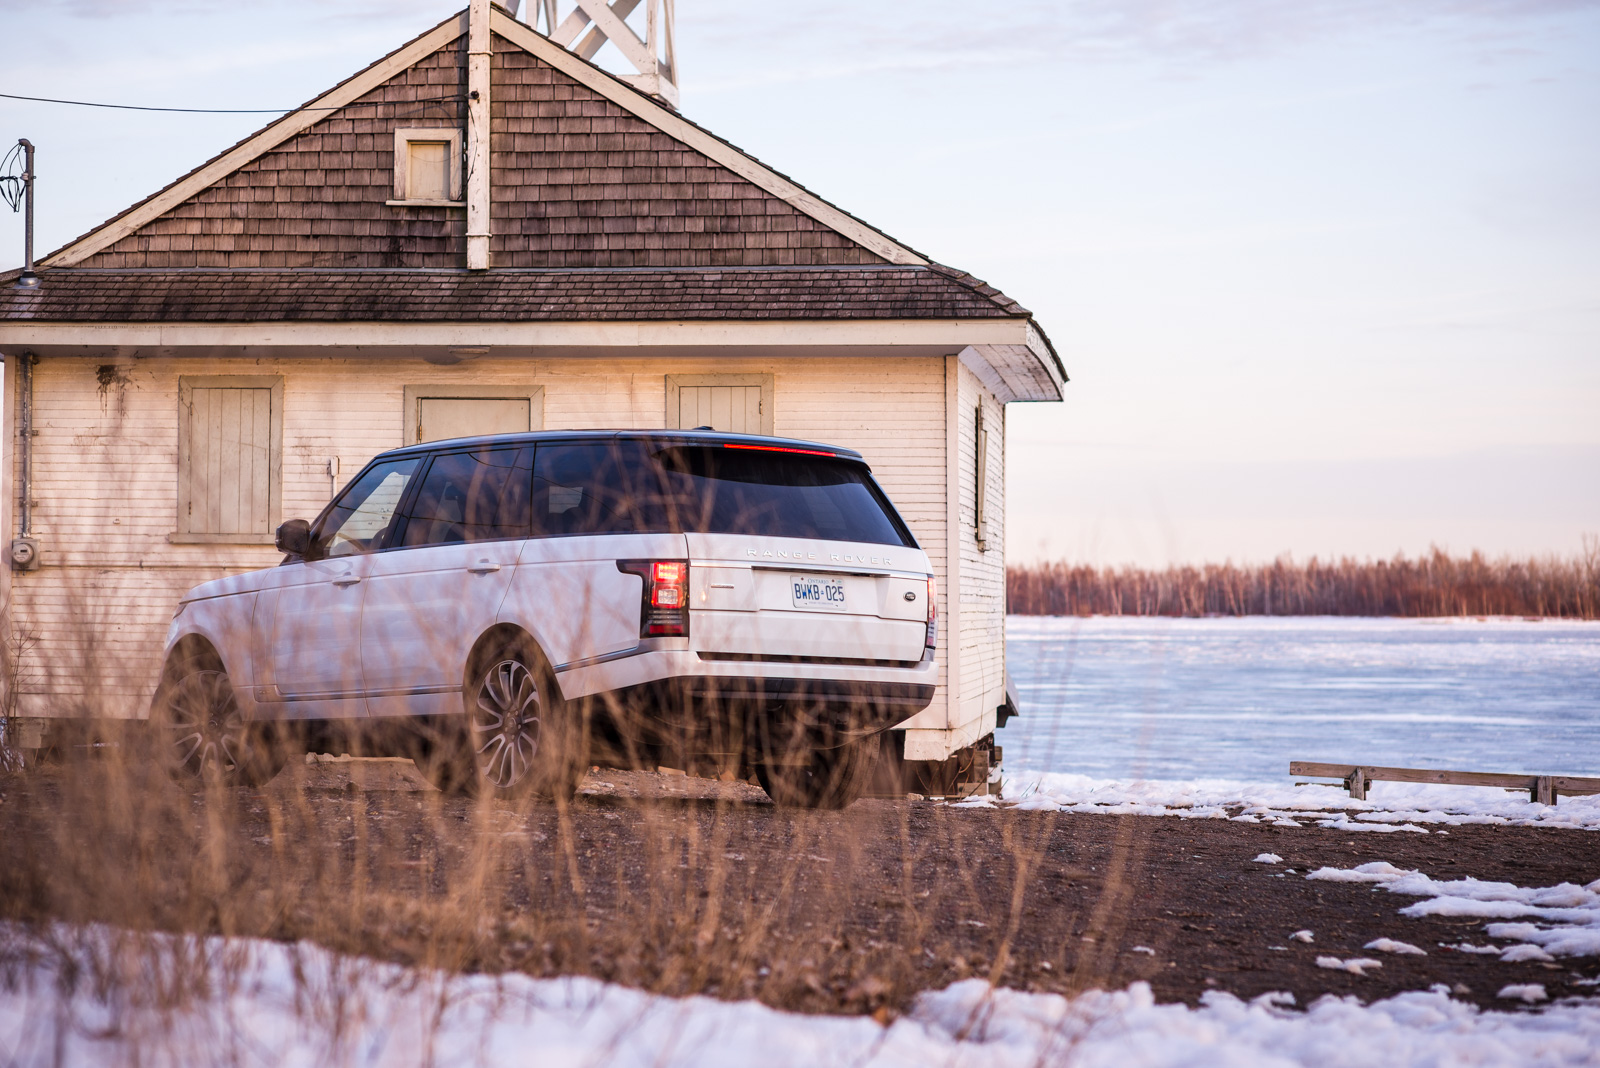 Review 2015 Range Rover Autobiography Lwb Canadian Auto Transmissions Fuji White